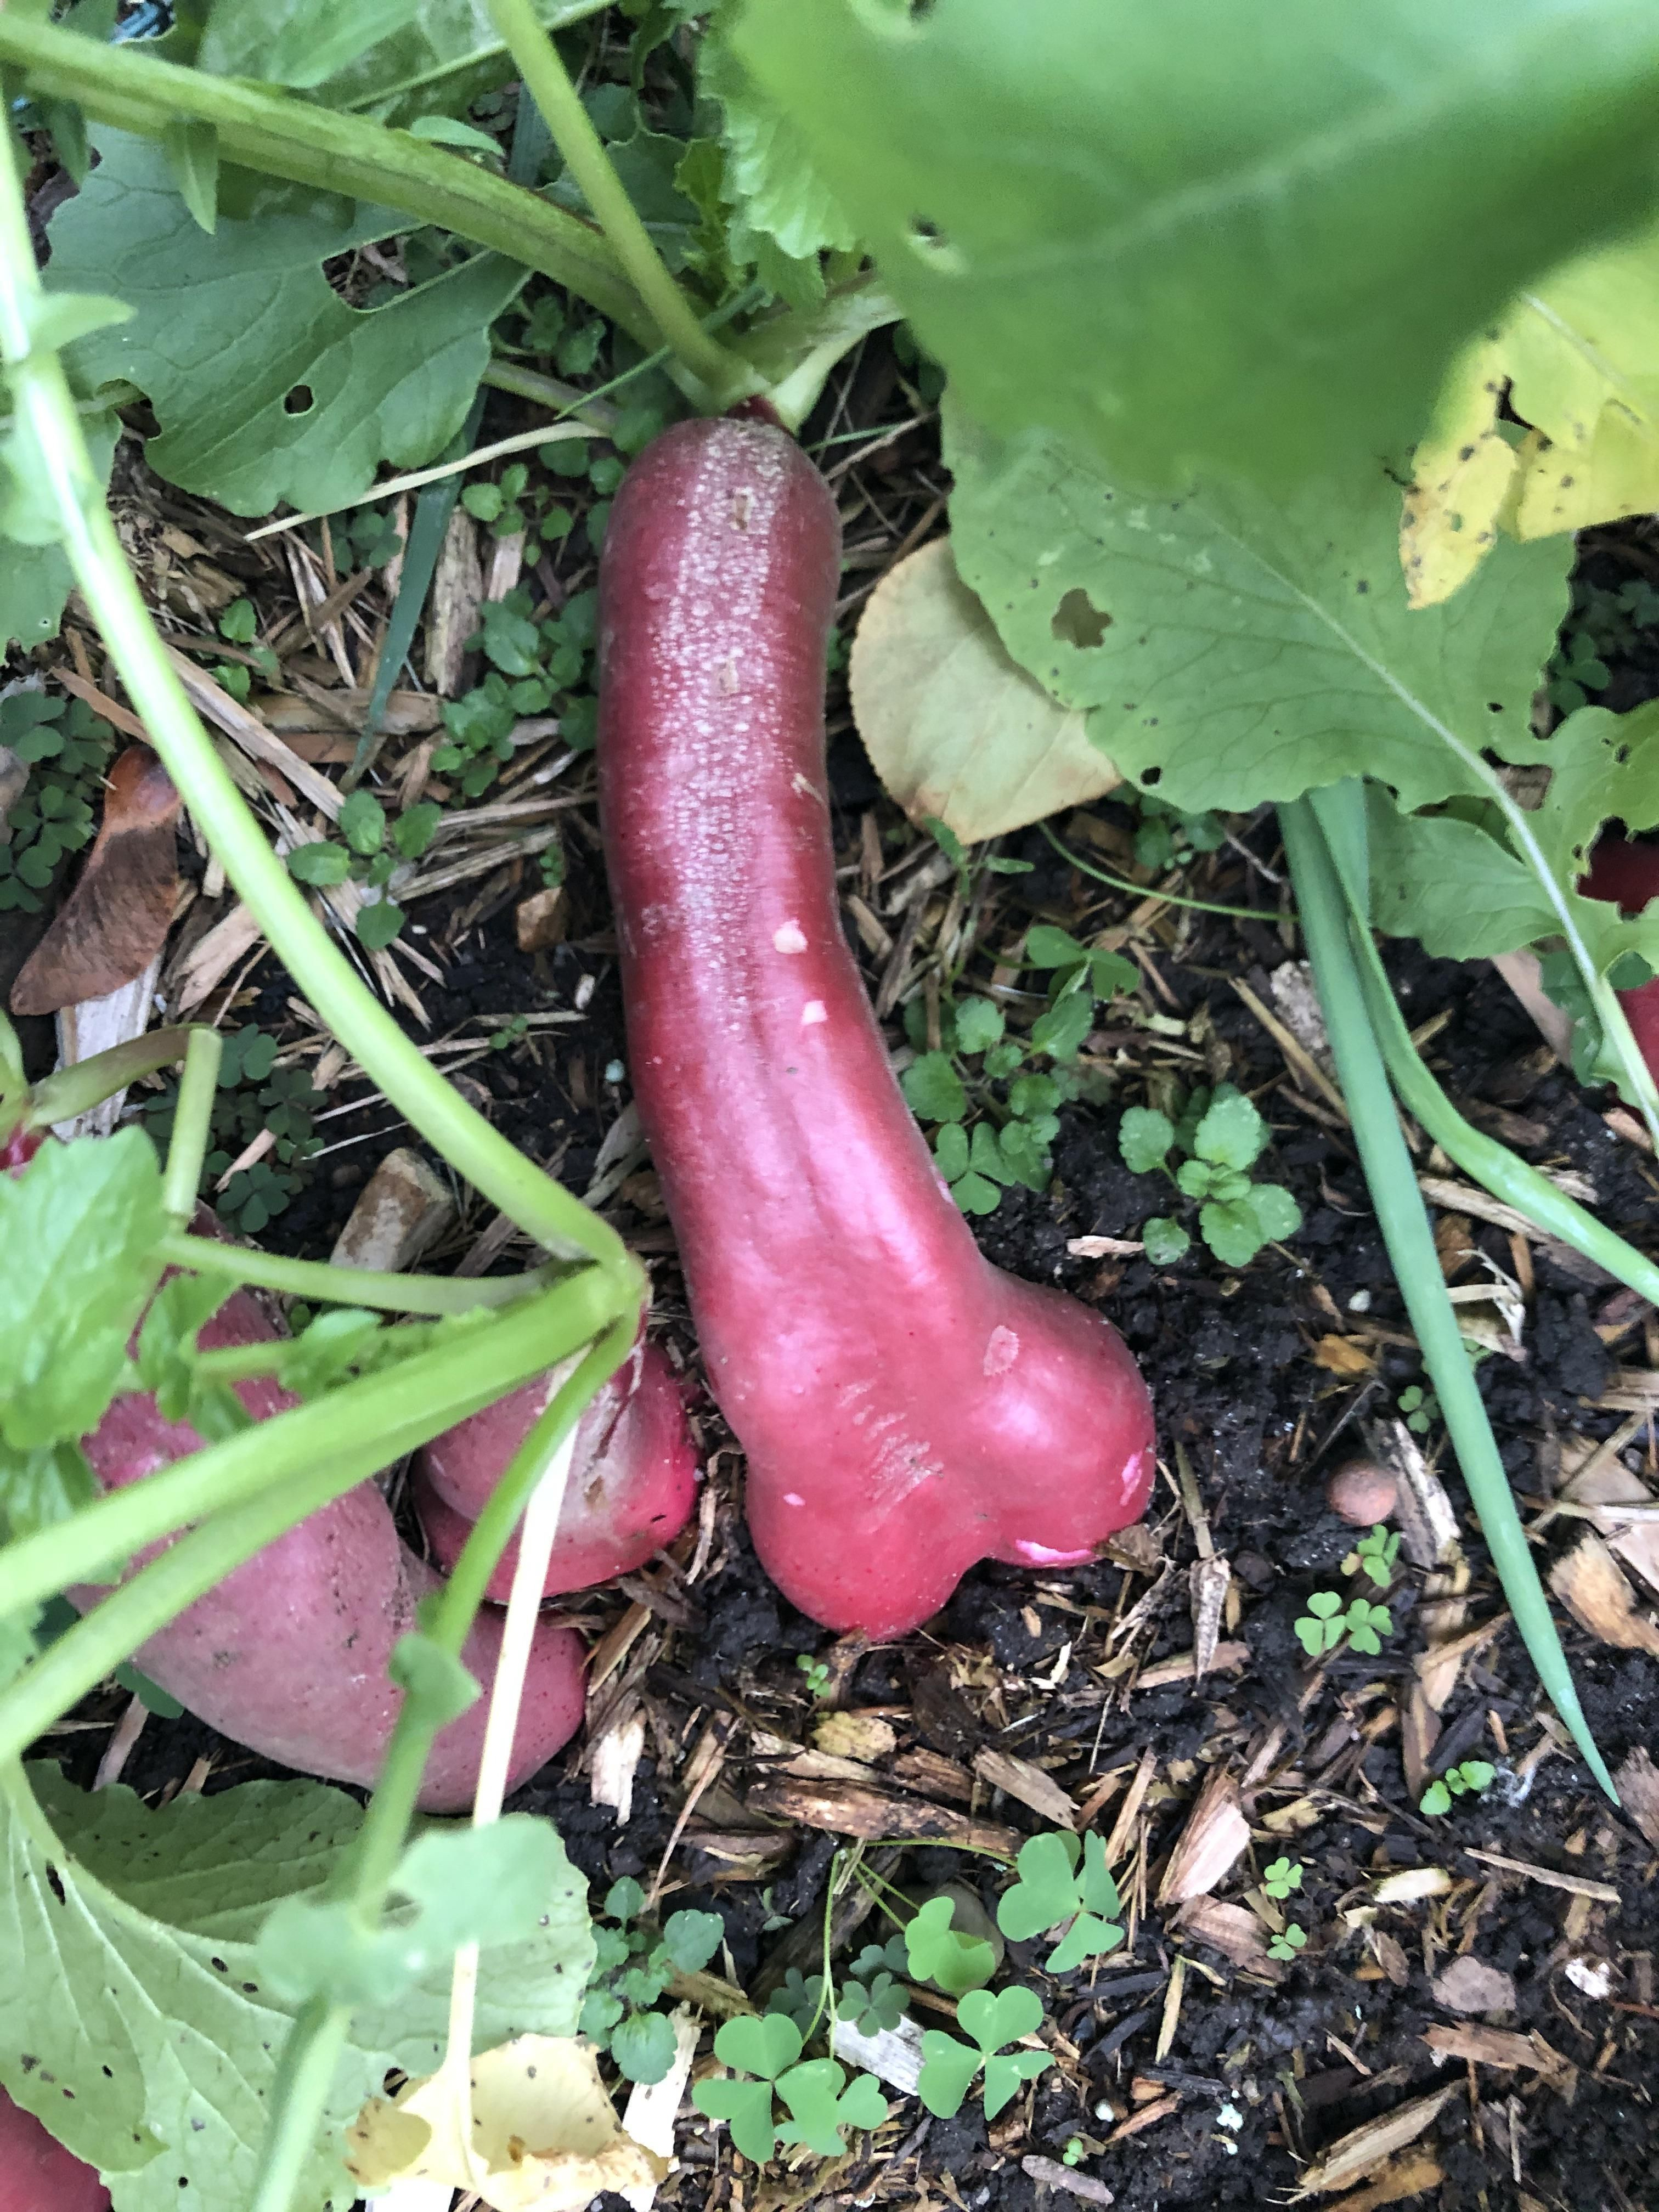 If you've ever wondered what happens if you forget to pick a radish, wonder no more. Found this in the garden today.